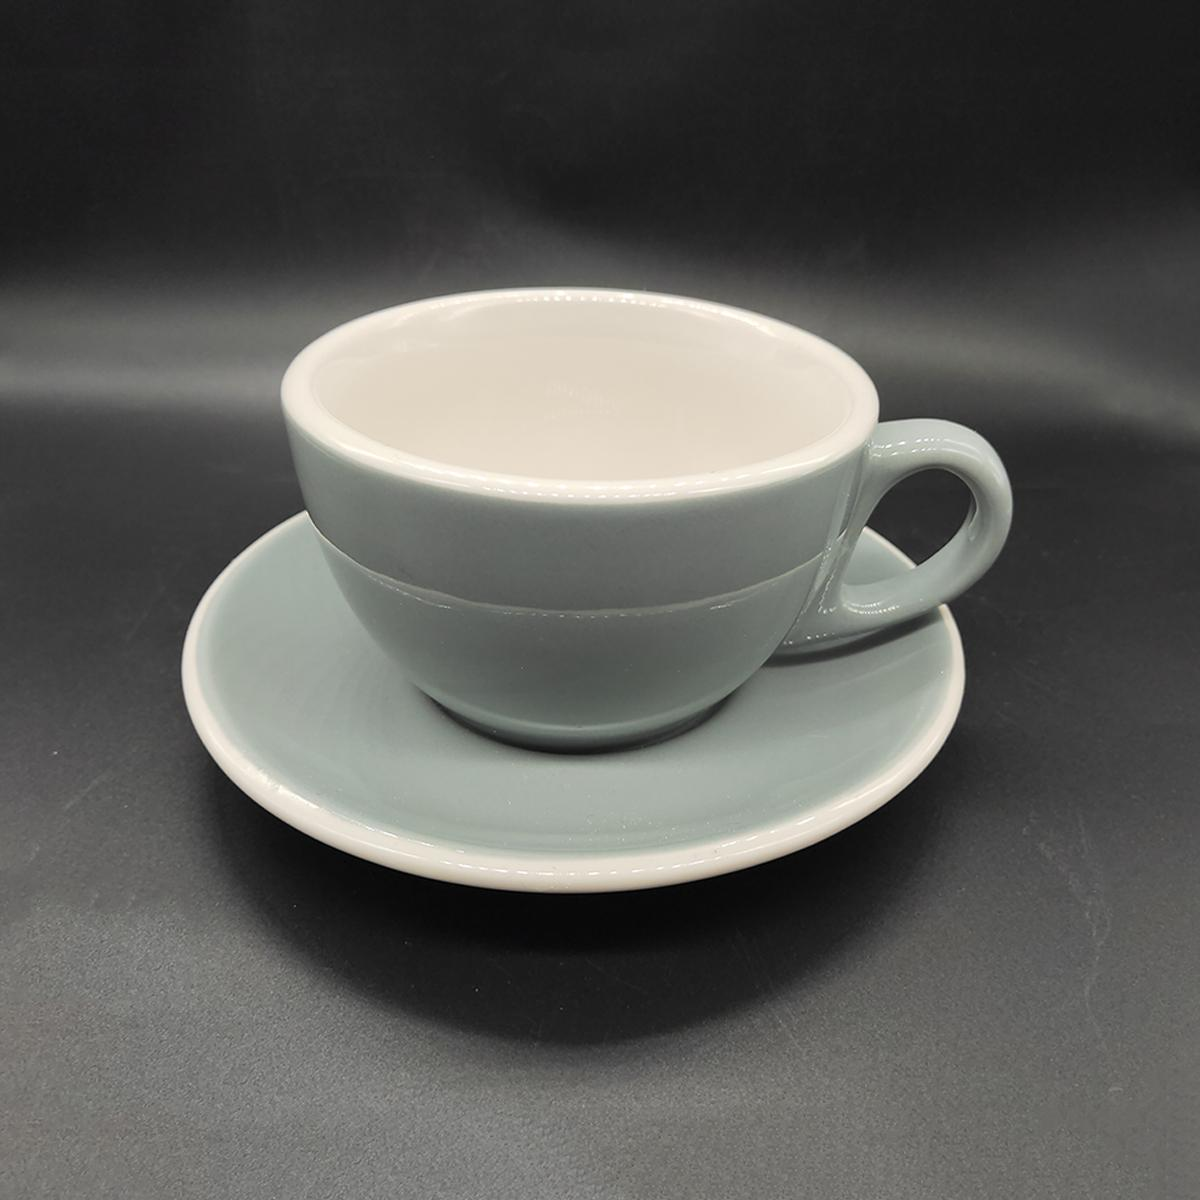 ACF style ceramic cup and saucer 3